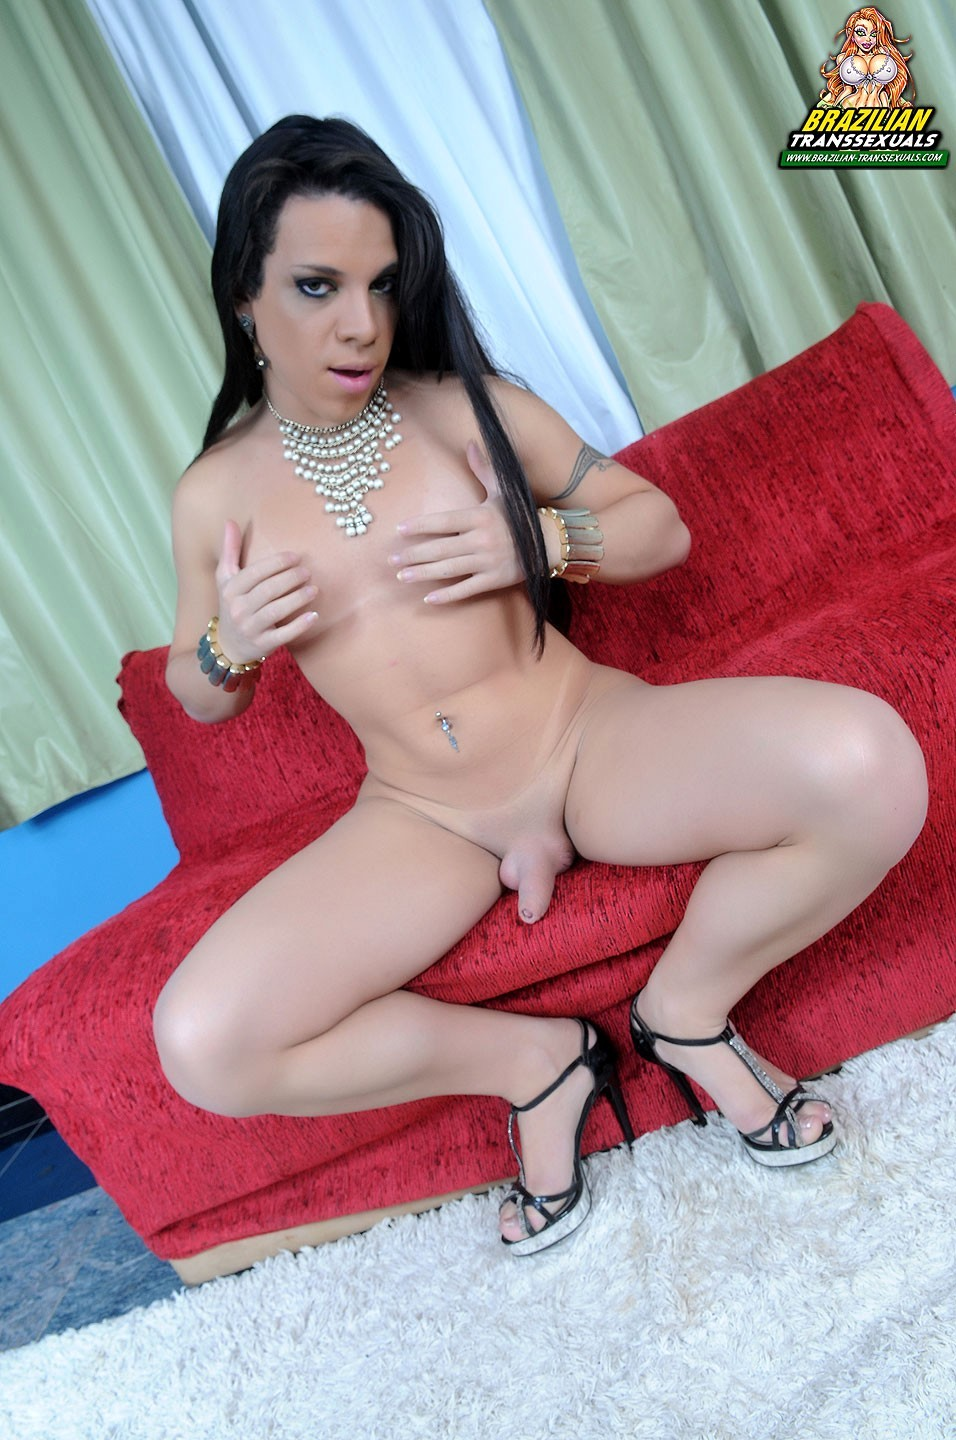 brazilian tgirl with massive tool